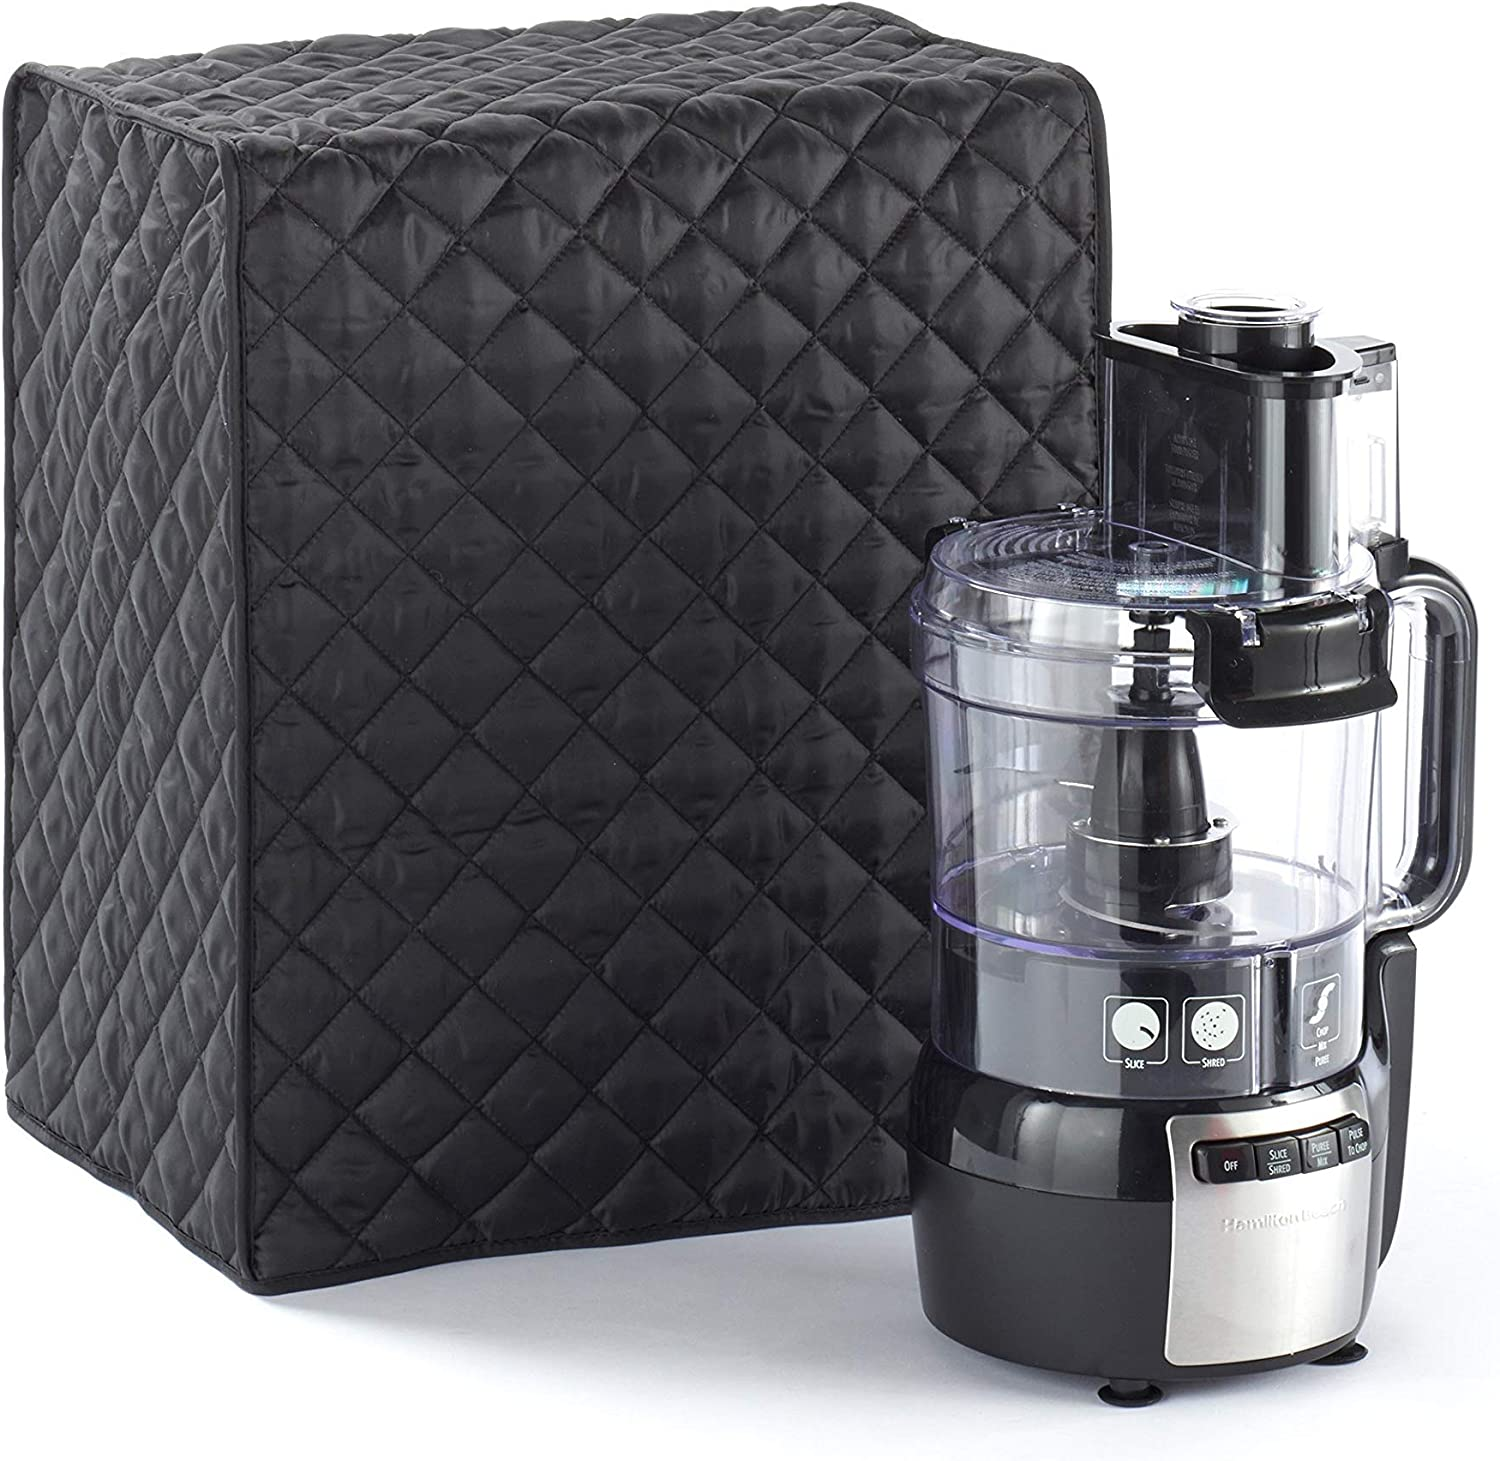 Covermates – Food Processor Cover – 15W x 11D x 18H – Diamond Collection – 2 YR Warranty – Year Around Protection - Black